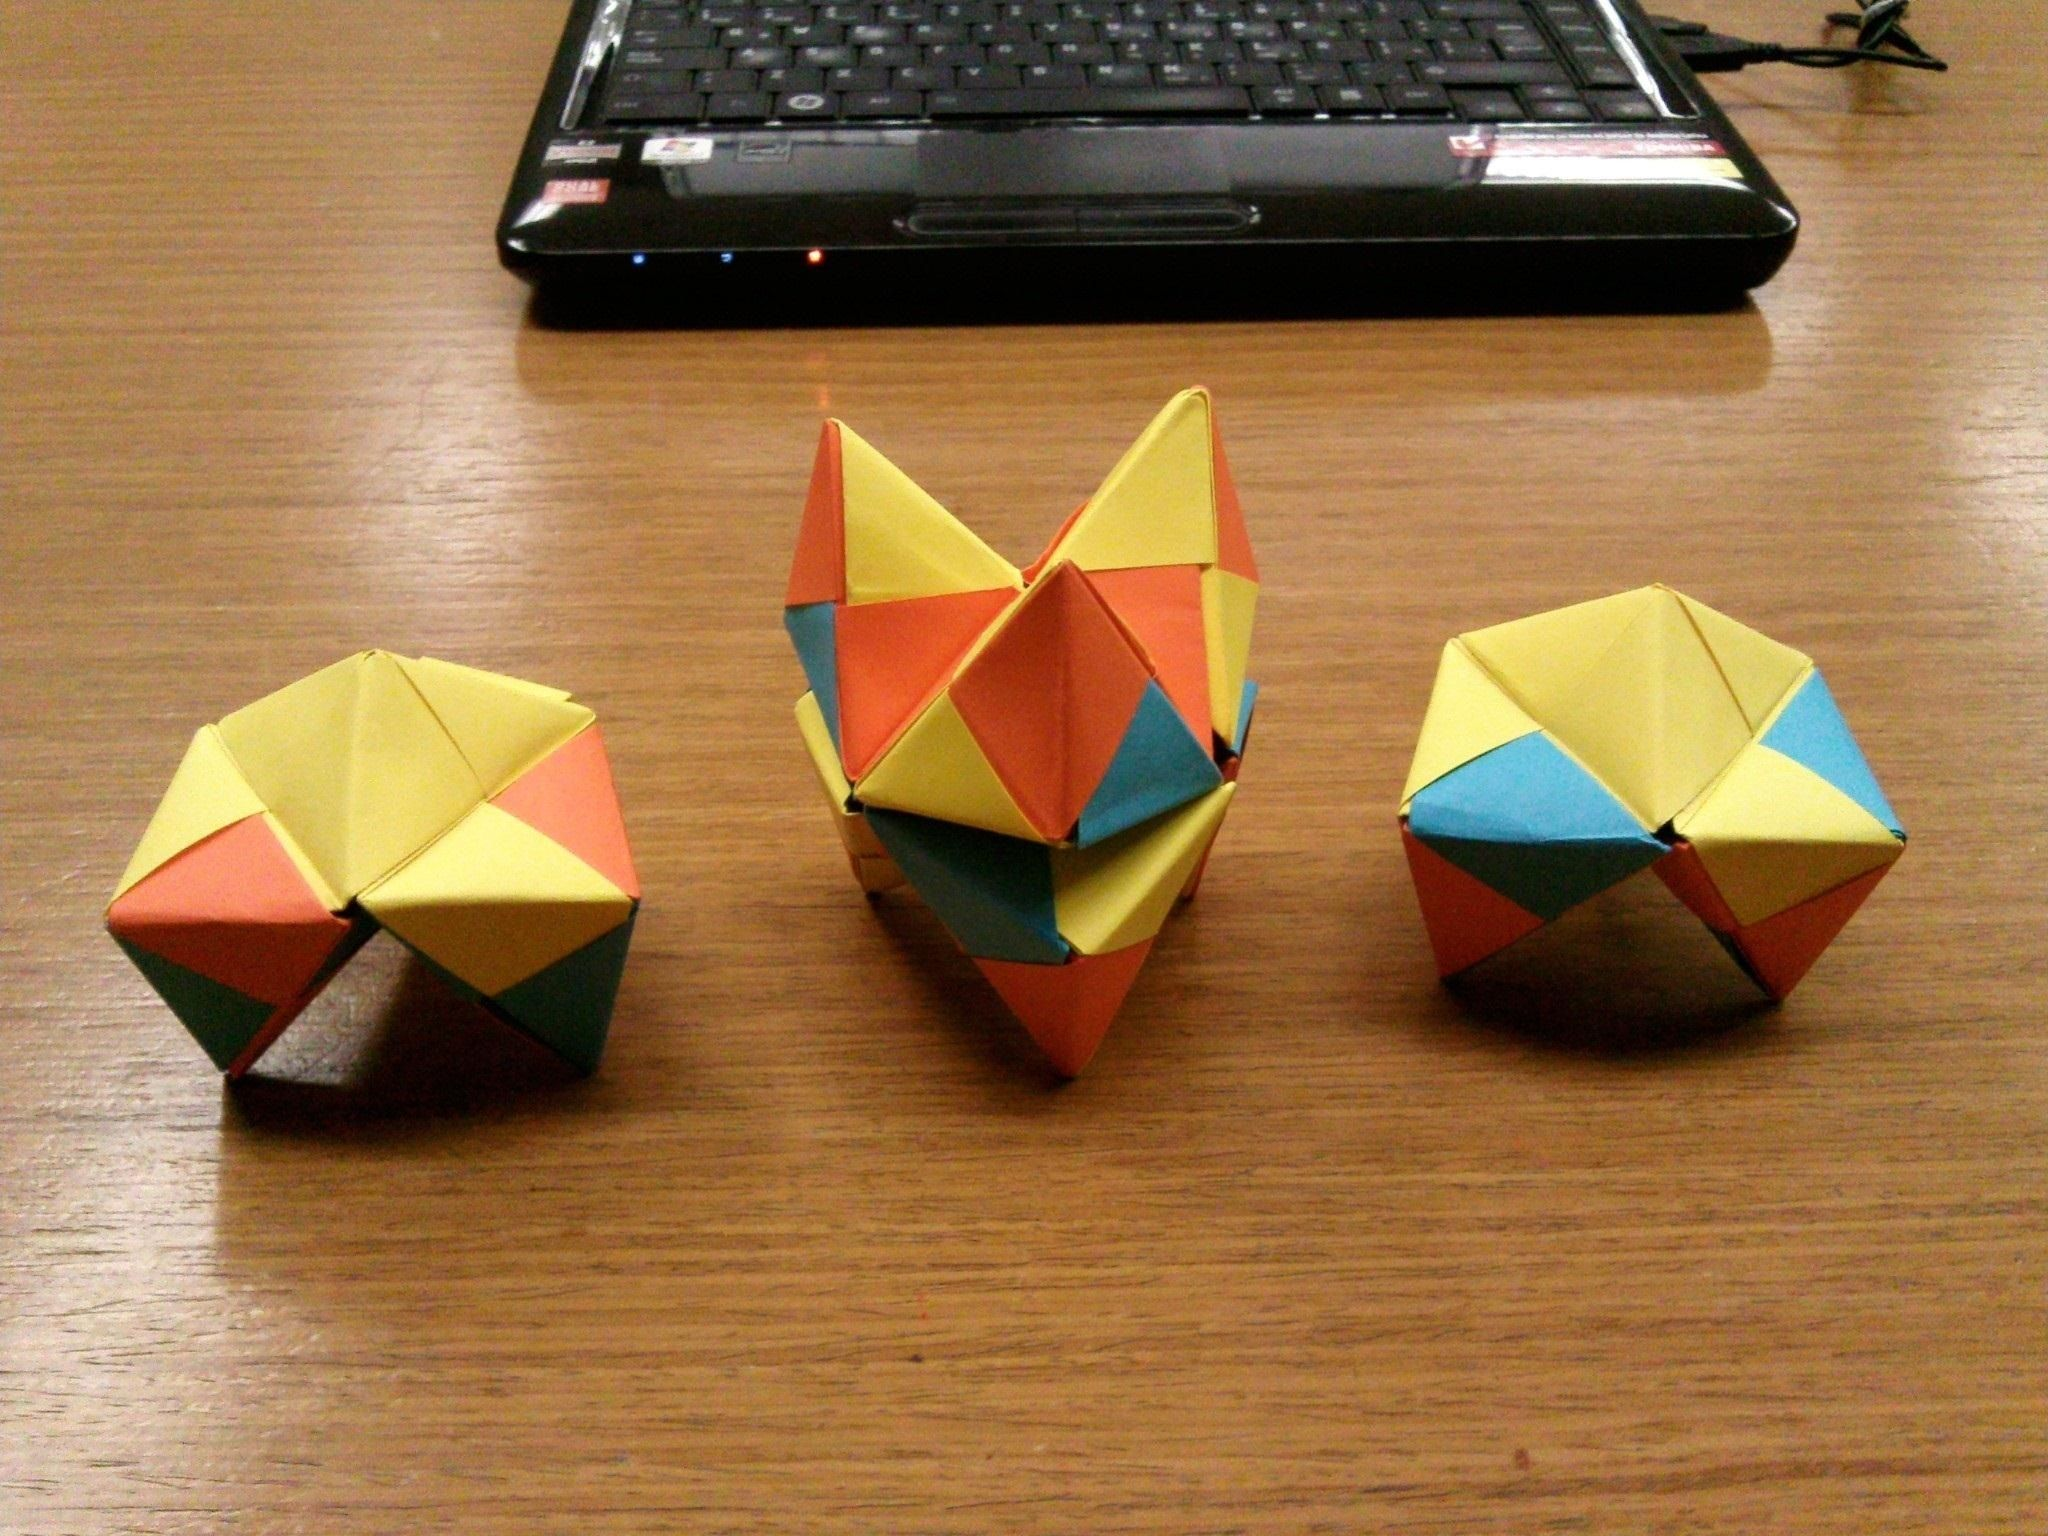 Modular origami how to make a cube octahedron icosahedron from modular origami how to make a cube octahedron icosahedron from sonobe units jeuxipadfo Choice Image